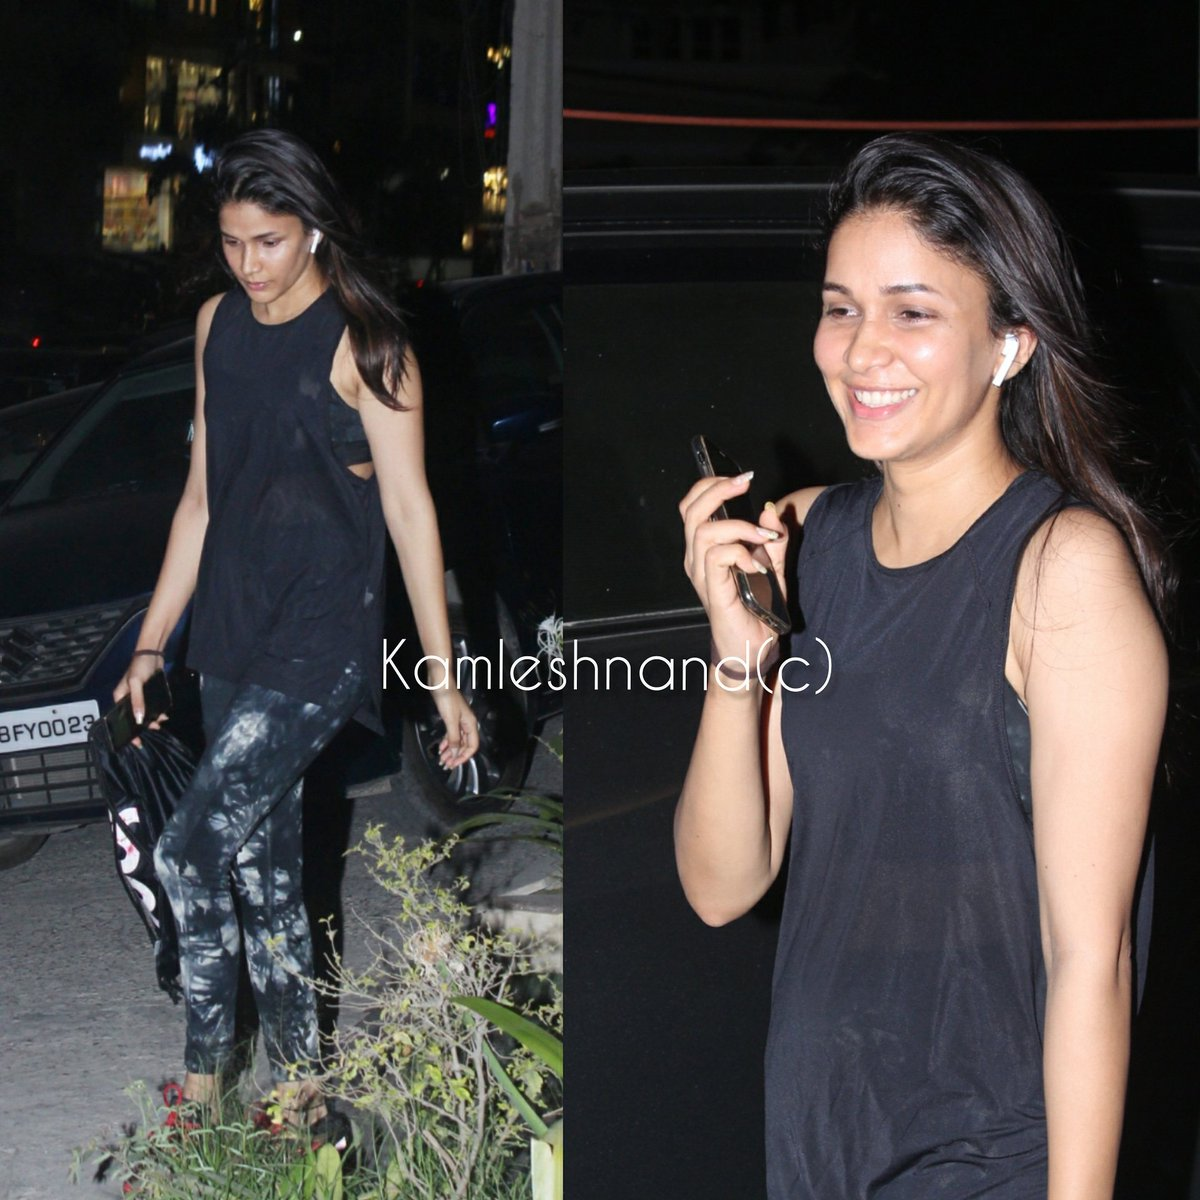 Is that fitness that keeps you smiling ? #LavanyaTripathi papped post gym session in city @kamlesh_nand @Itslavanya #Tollywood #southcelebs pic.twitter.com/Xz4xHDL4RP